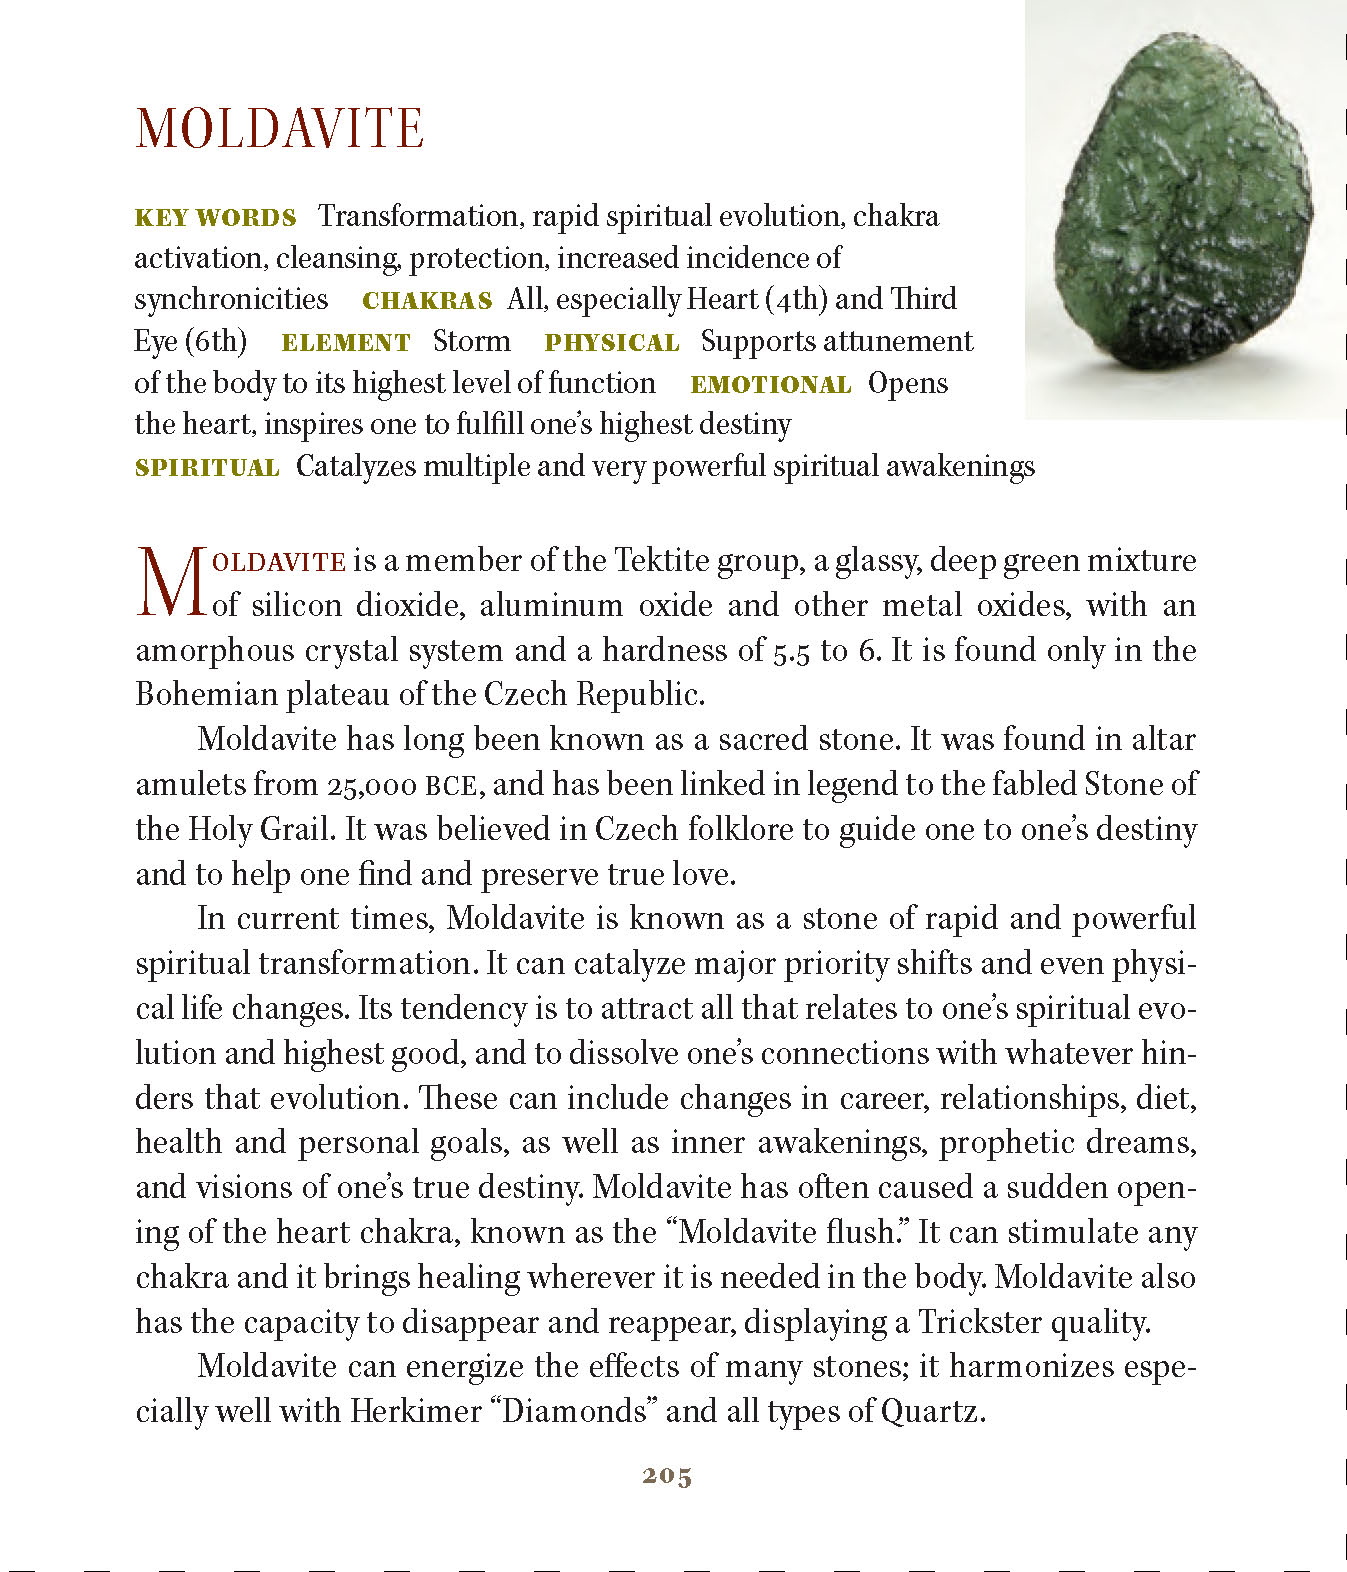 My moldavite experience [Text Only] - Aeclectic Tarot Forum